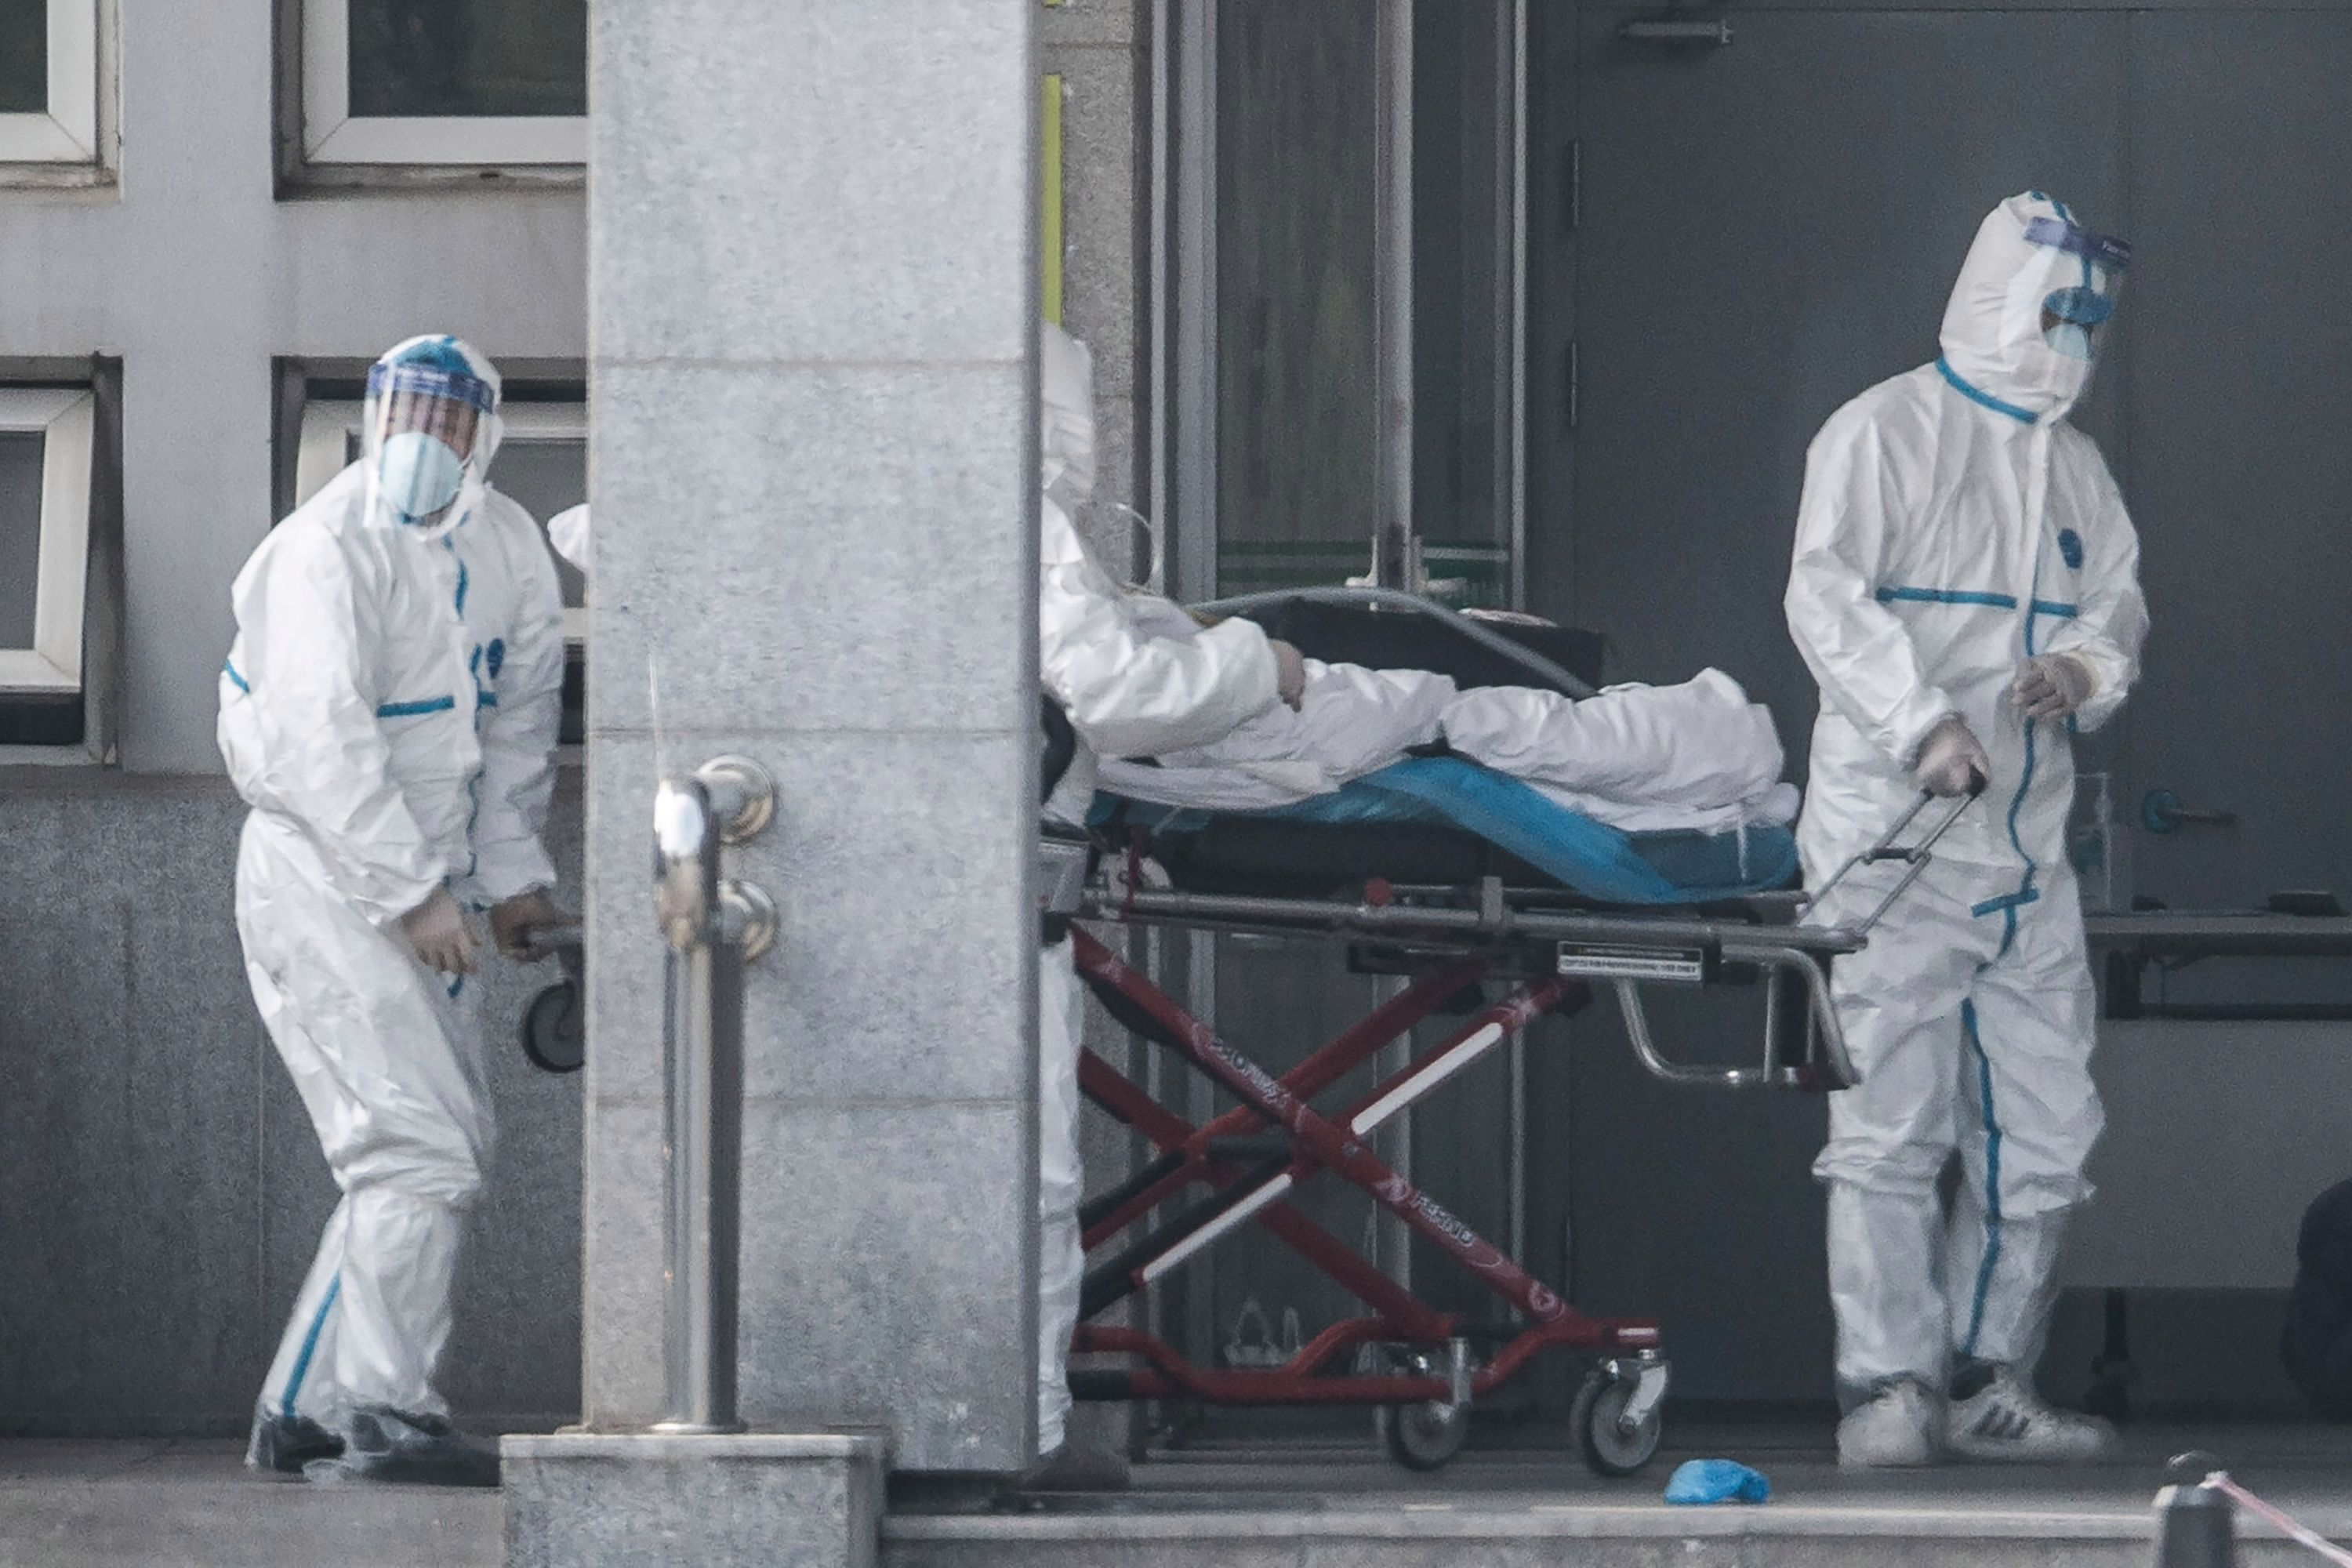 Medics in protective suits carry a patient into Jinyintan hospital in Wuhan